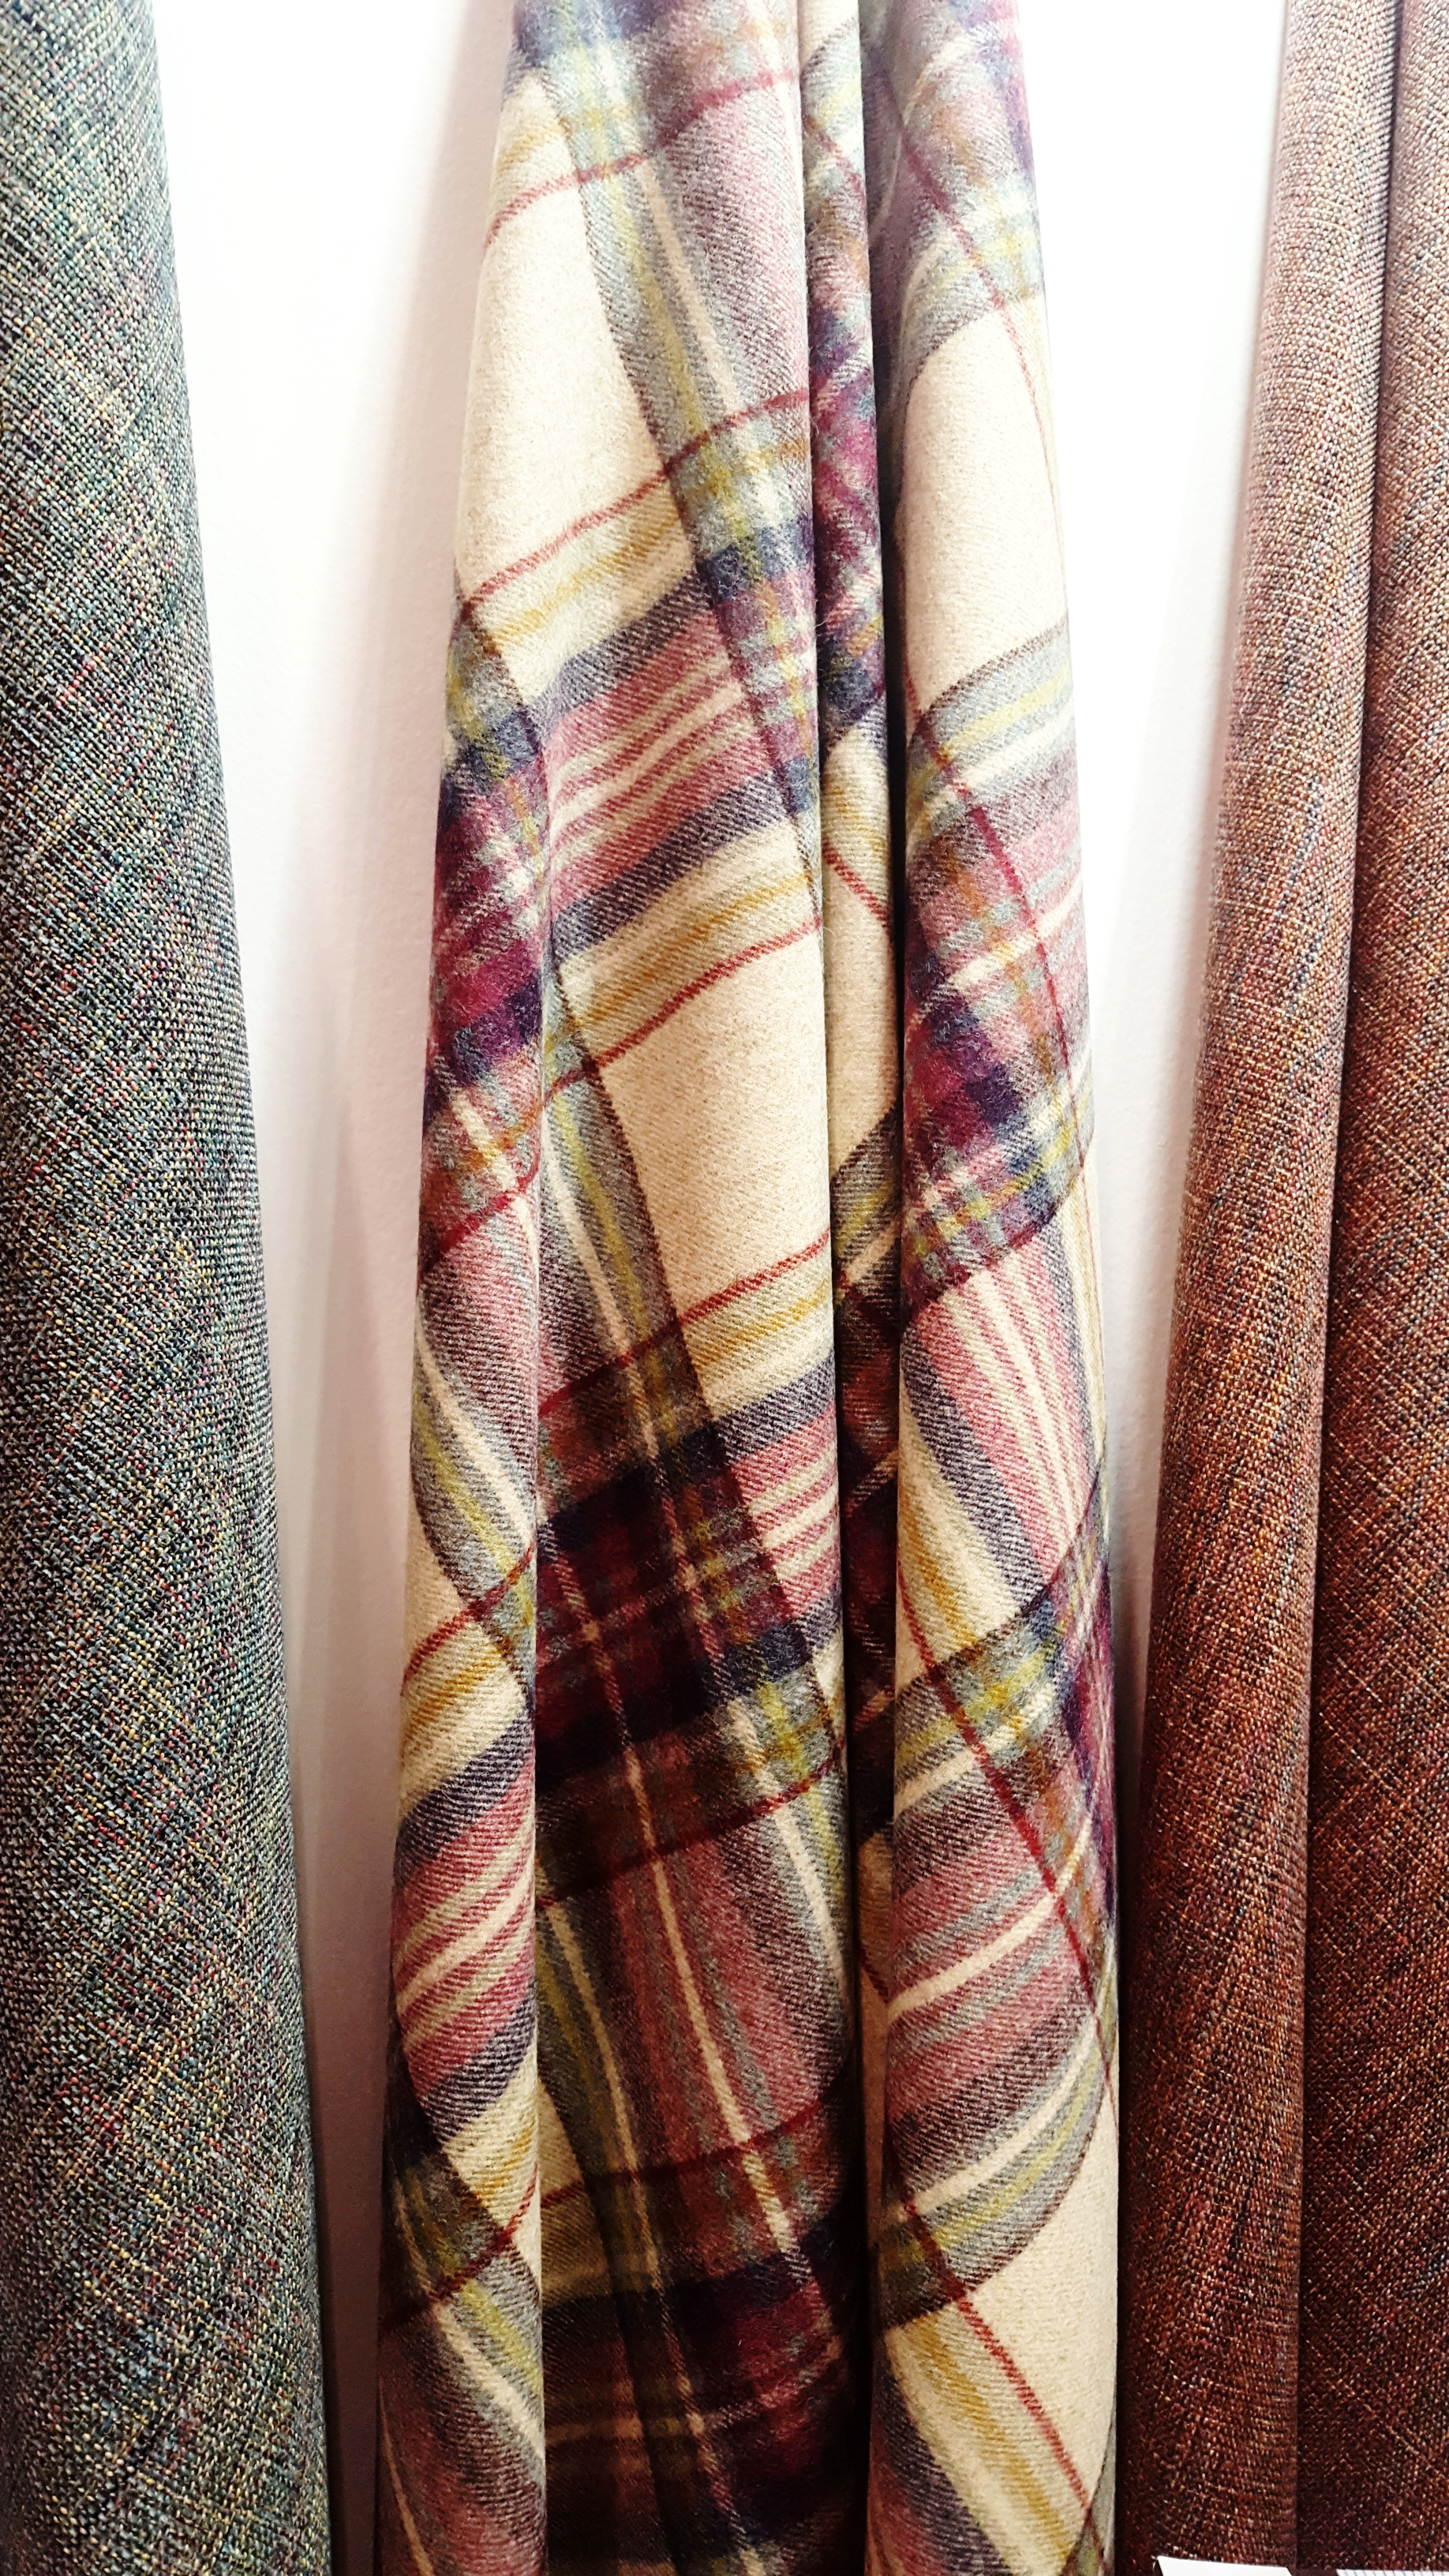 Commercial grade fabrics so you'll know they last! From Architex